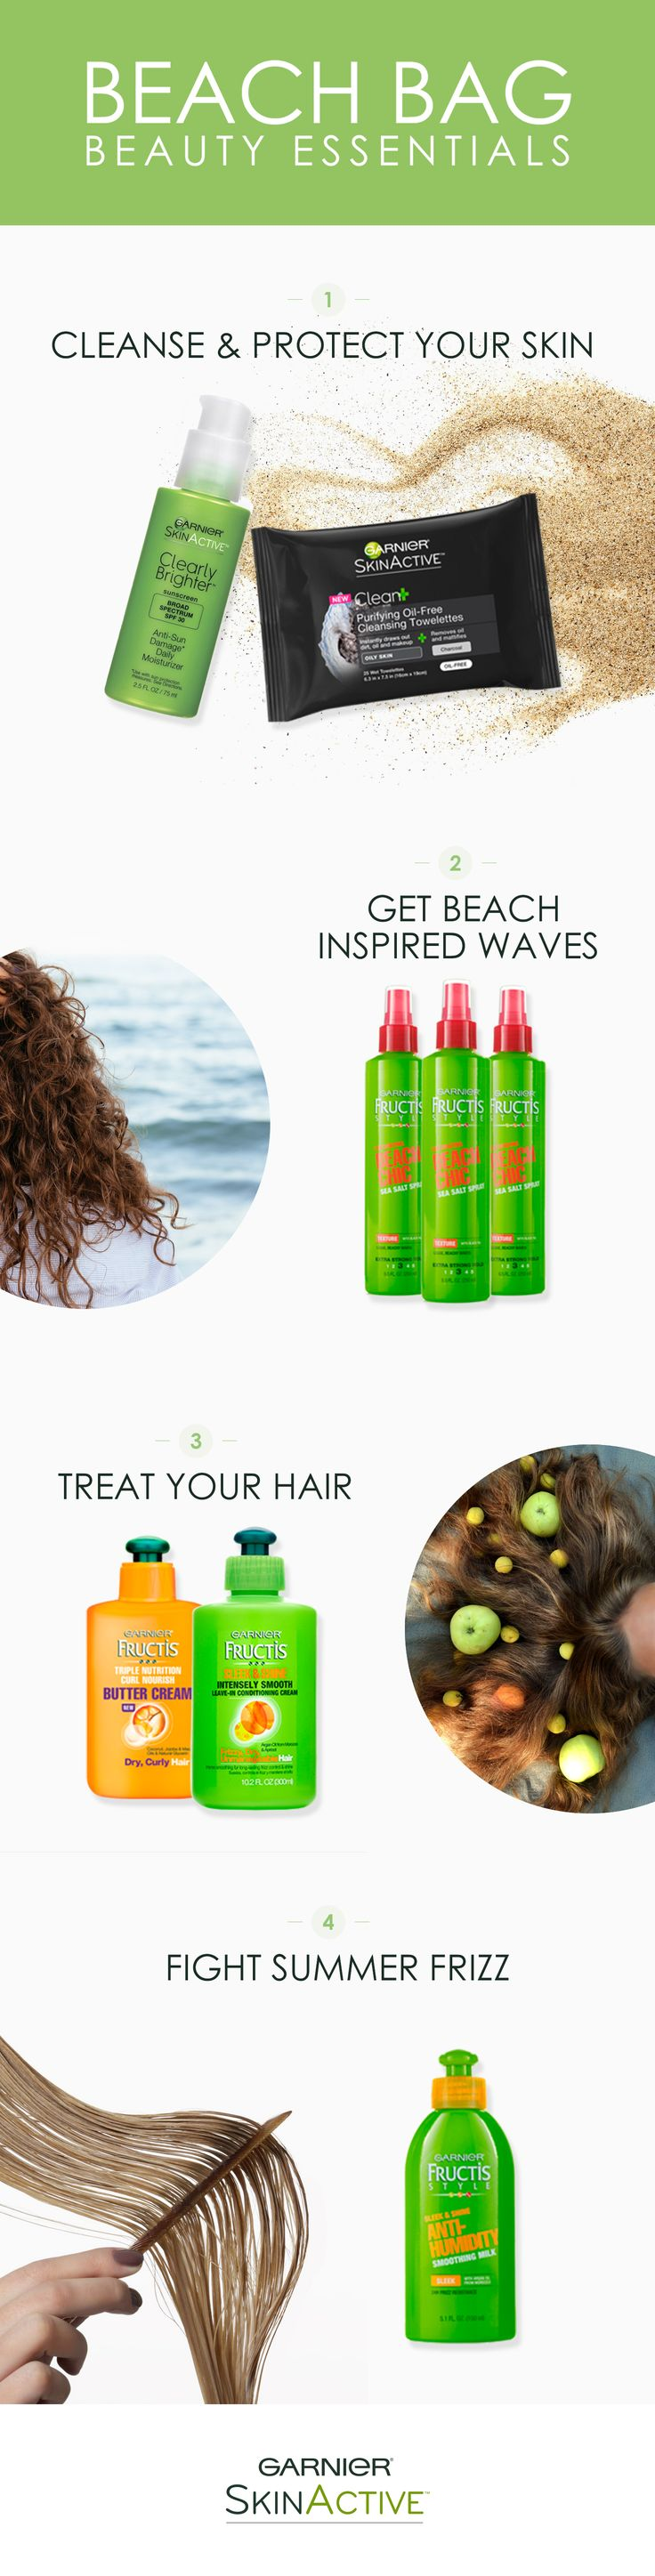 261 best Daily Regimen images on Pinterest | Beauty products, Dry ...